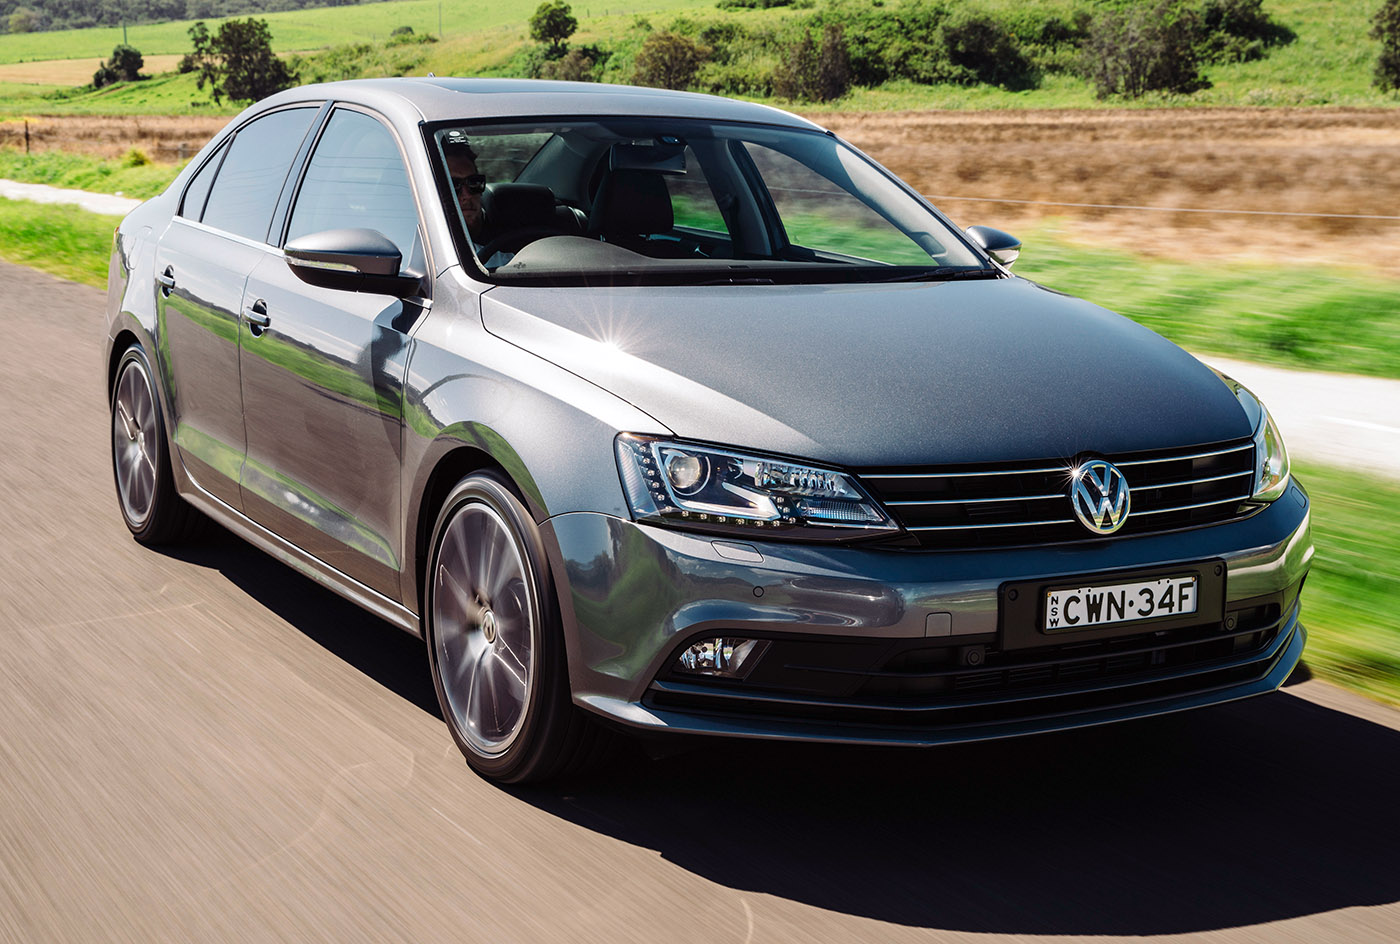 Volkswagen Jetta: 2015 Price And Features For Australia